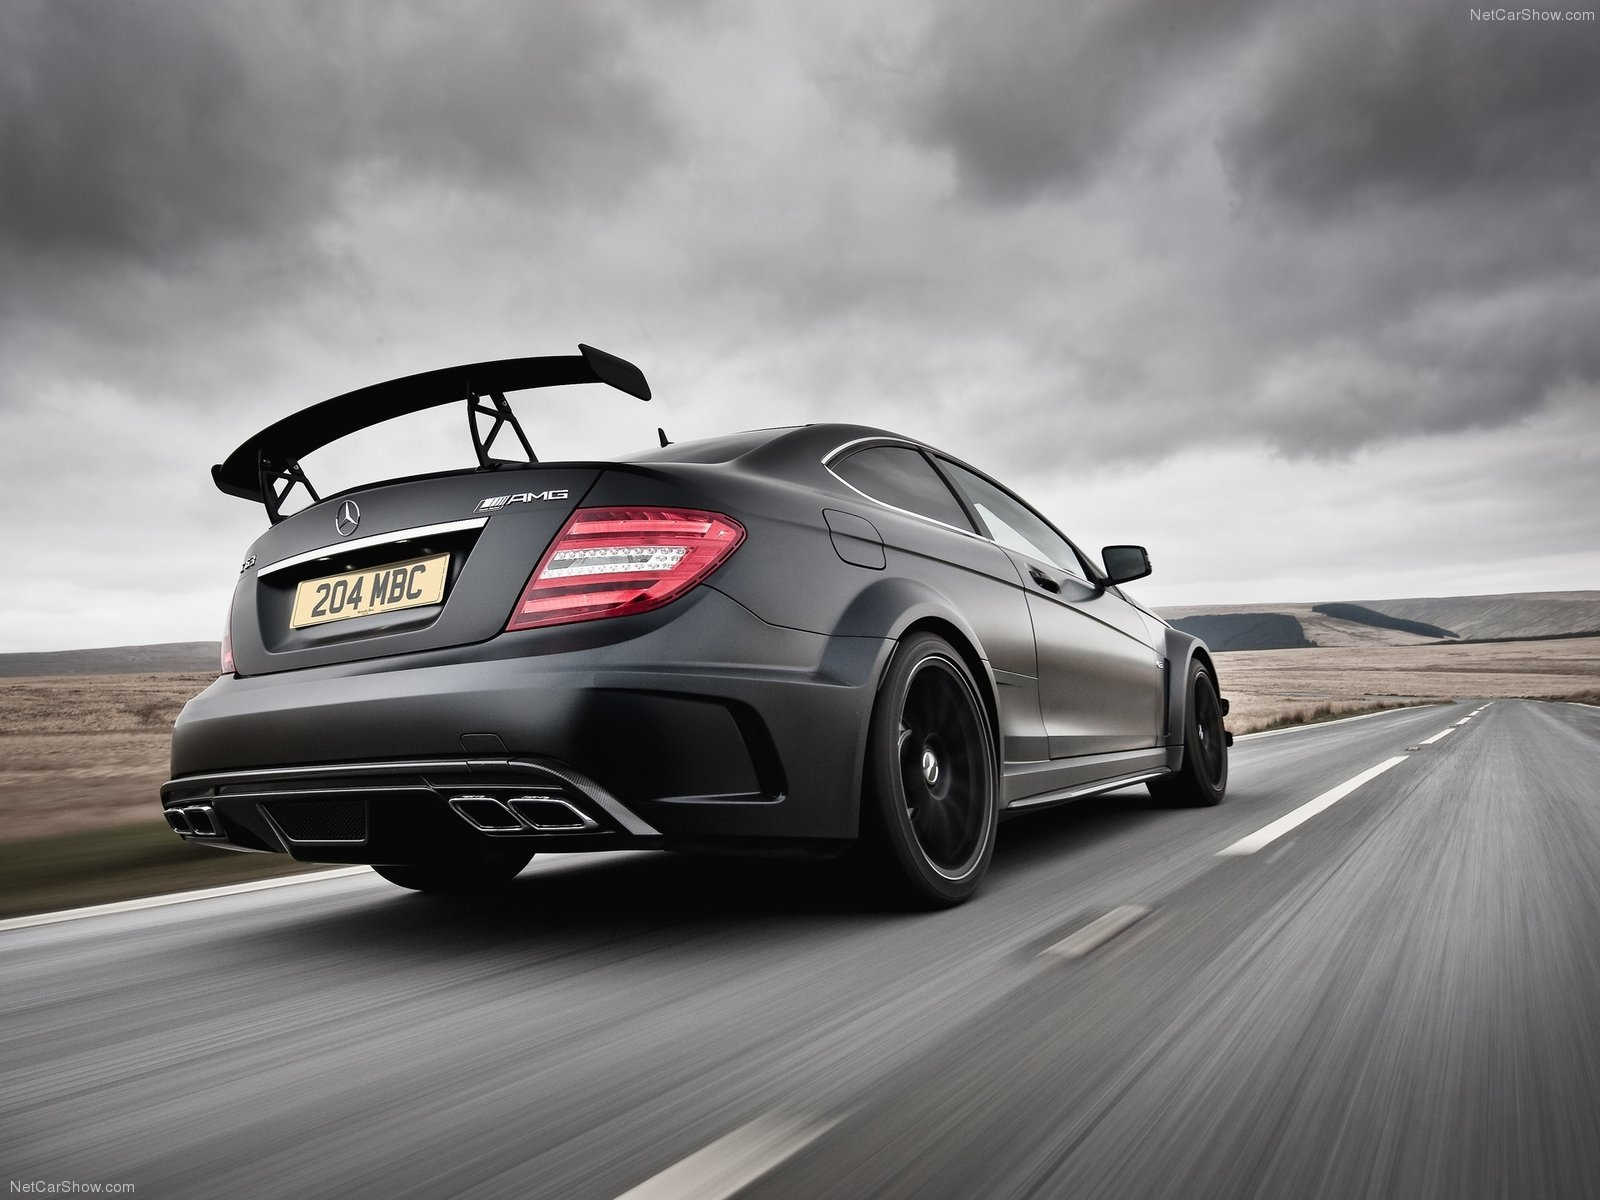 mercedes benz c63 amg coupe black series cars 2012 wallpaper 1600x1200 729236 wallpaperup - Mercedes Benz C63 Amg Black Series Wallpaper